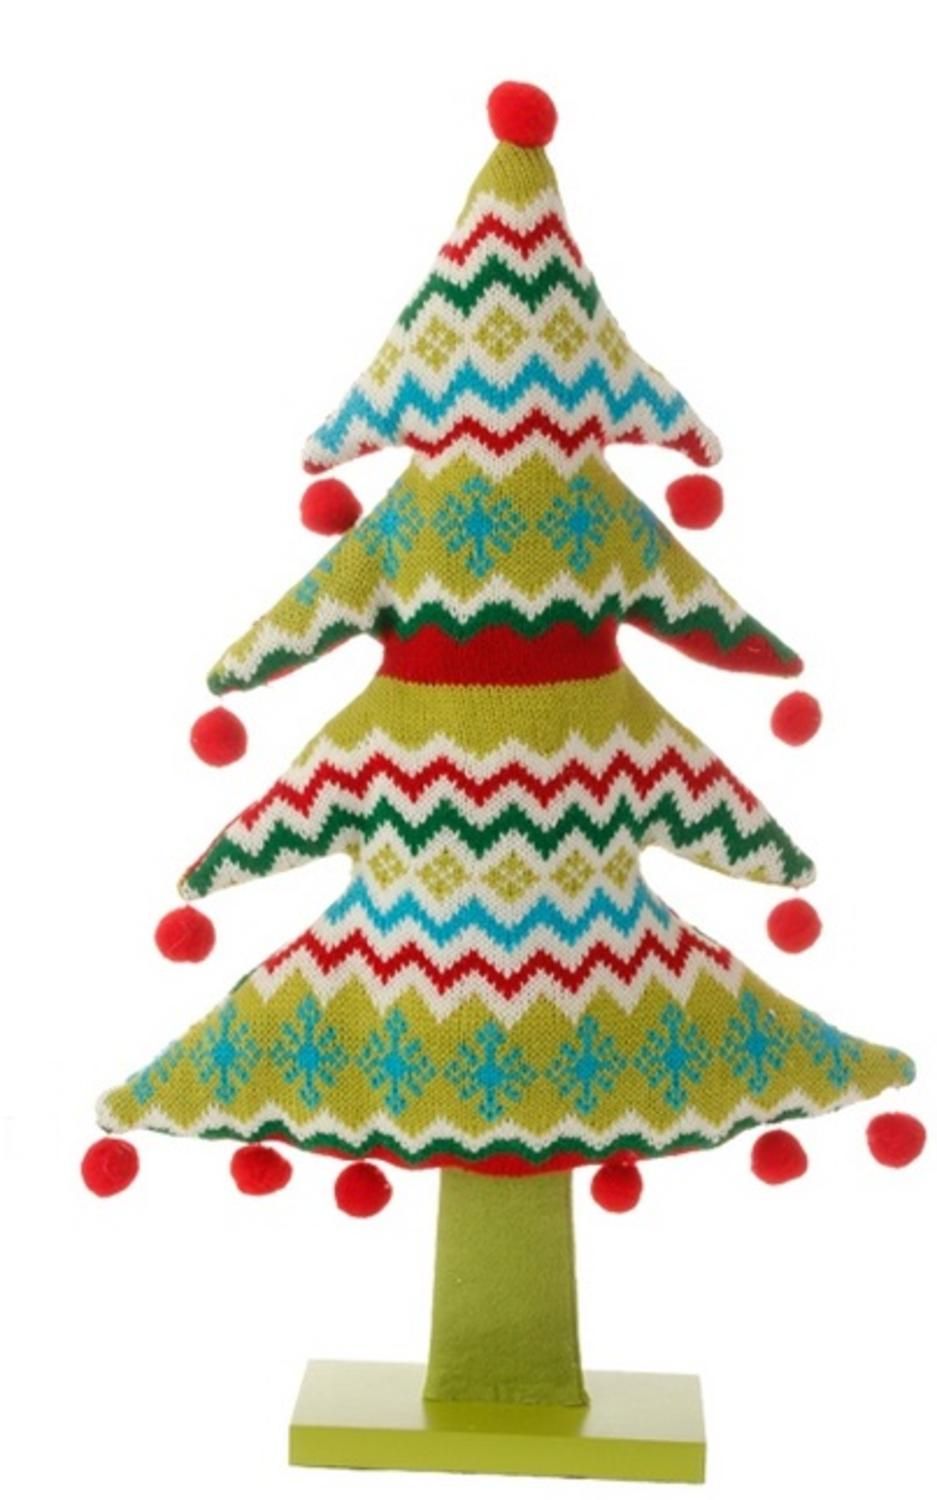 19 merry bright plush knit snowflake and chevron christmas tree table top decoration